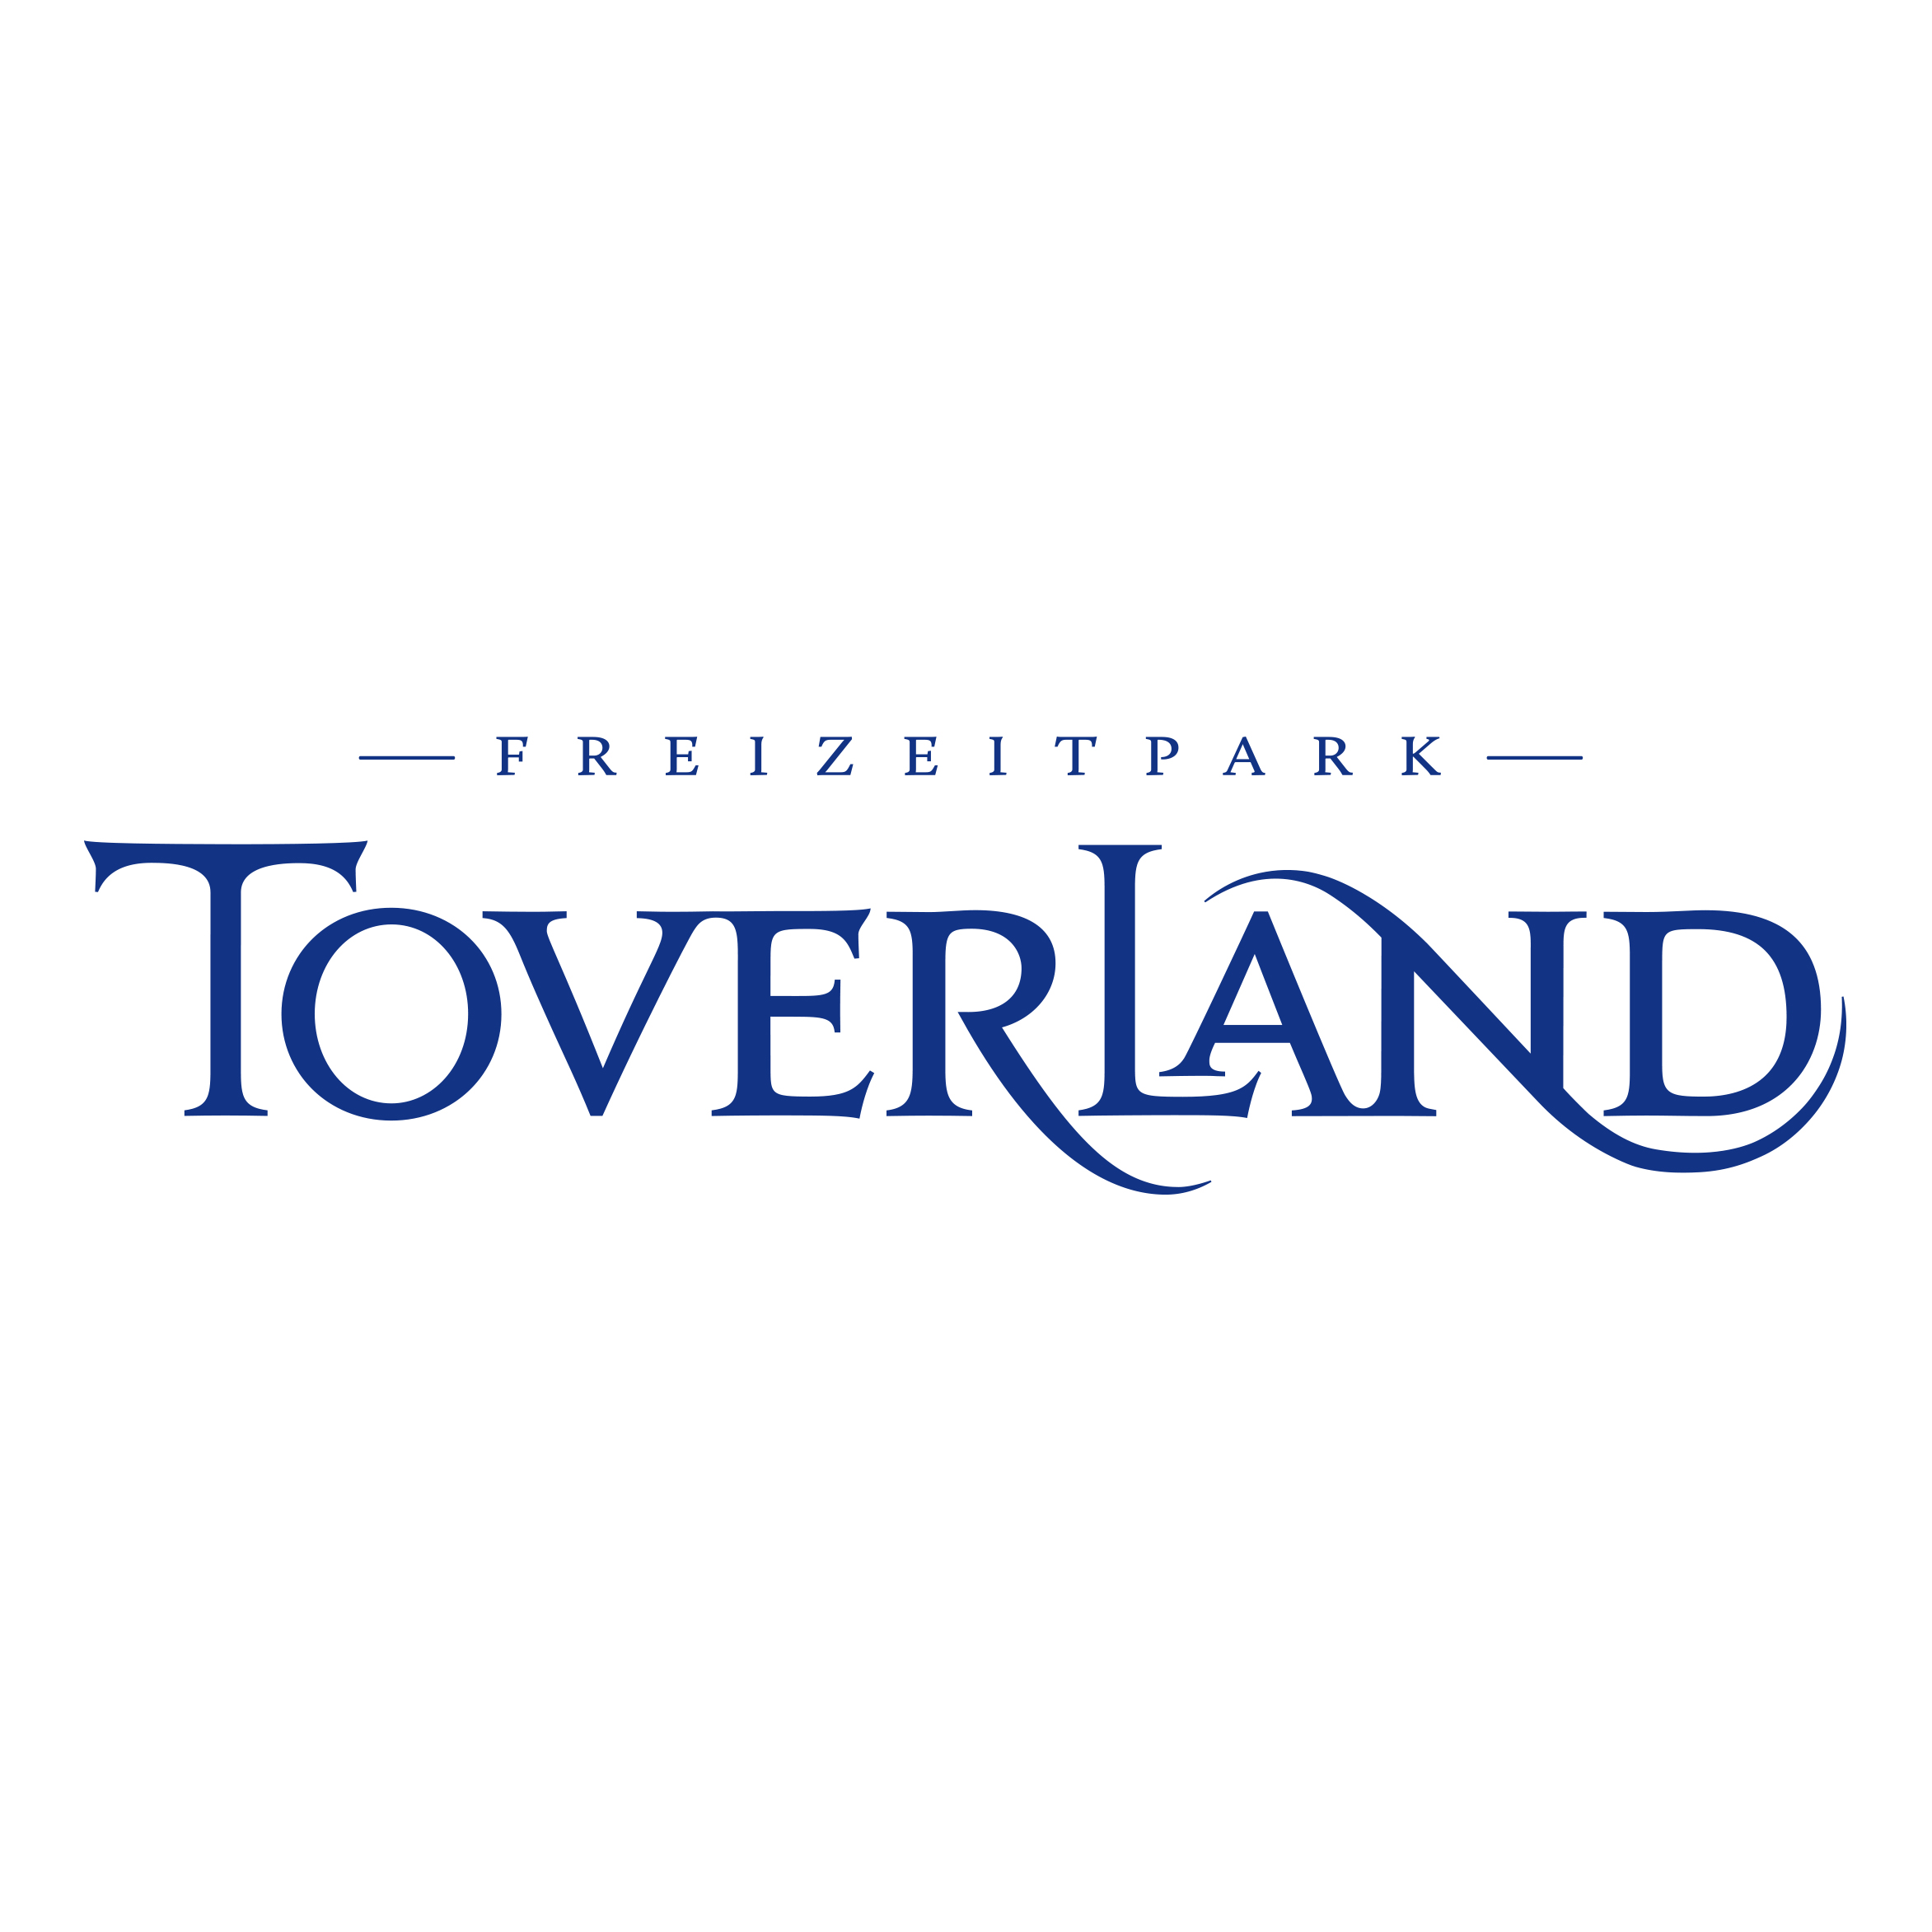 Toverland, Toverlaan 2, 5975 MR Sevenum